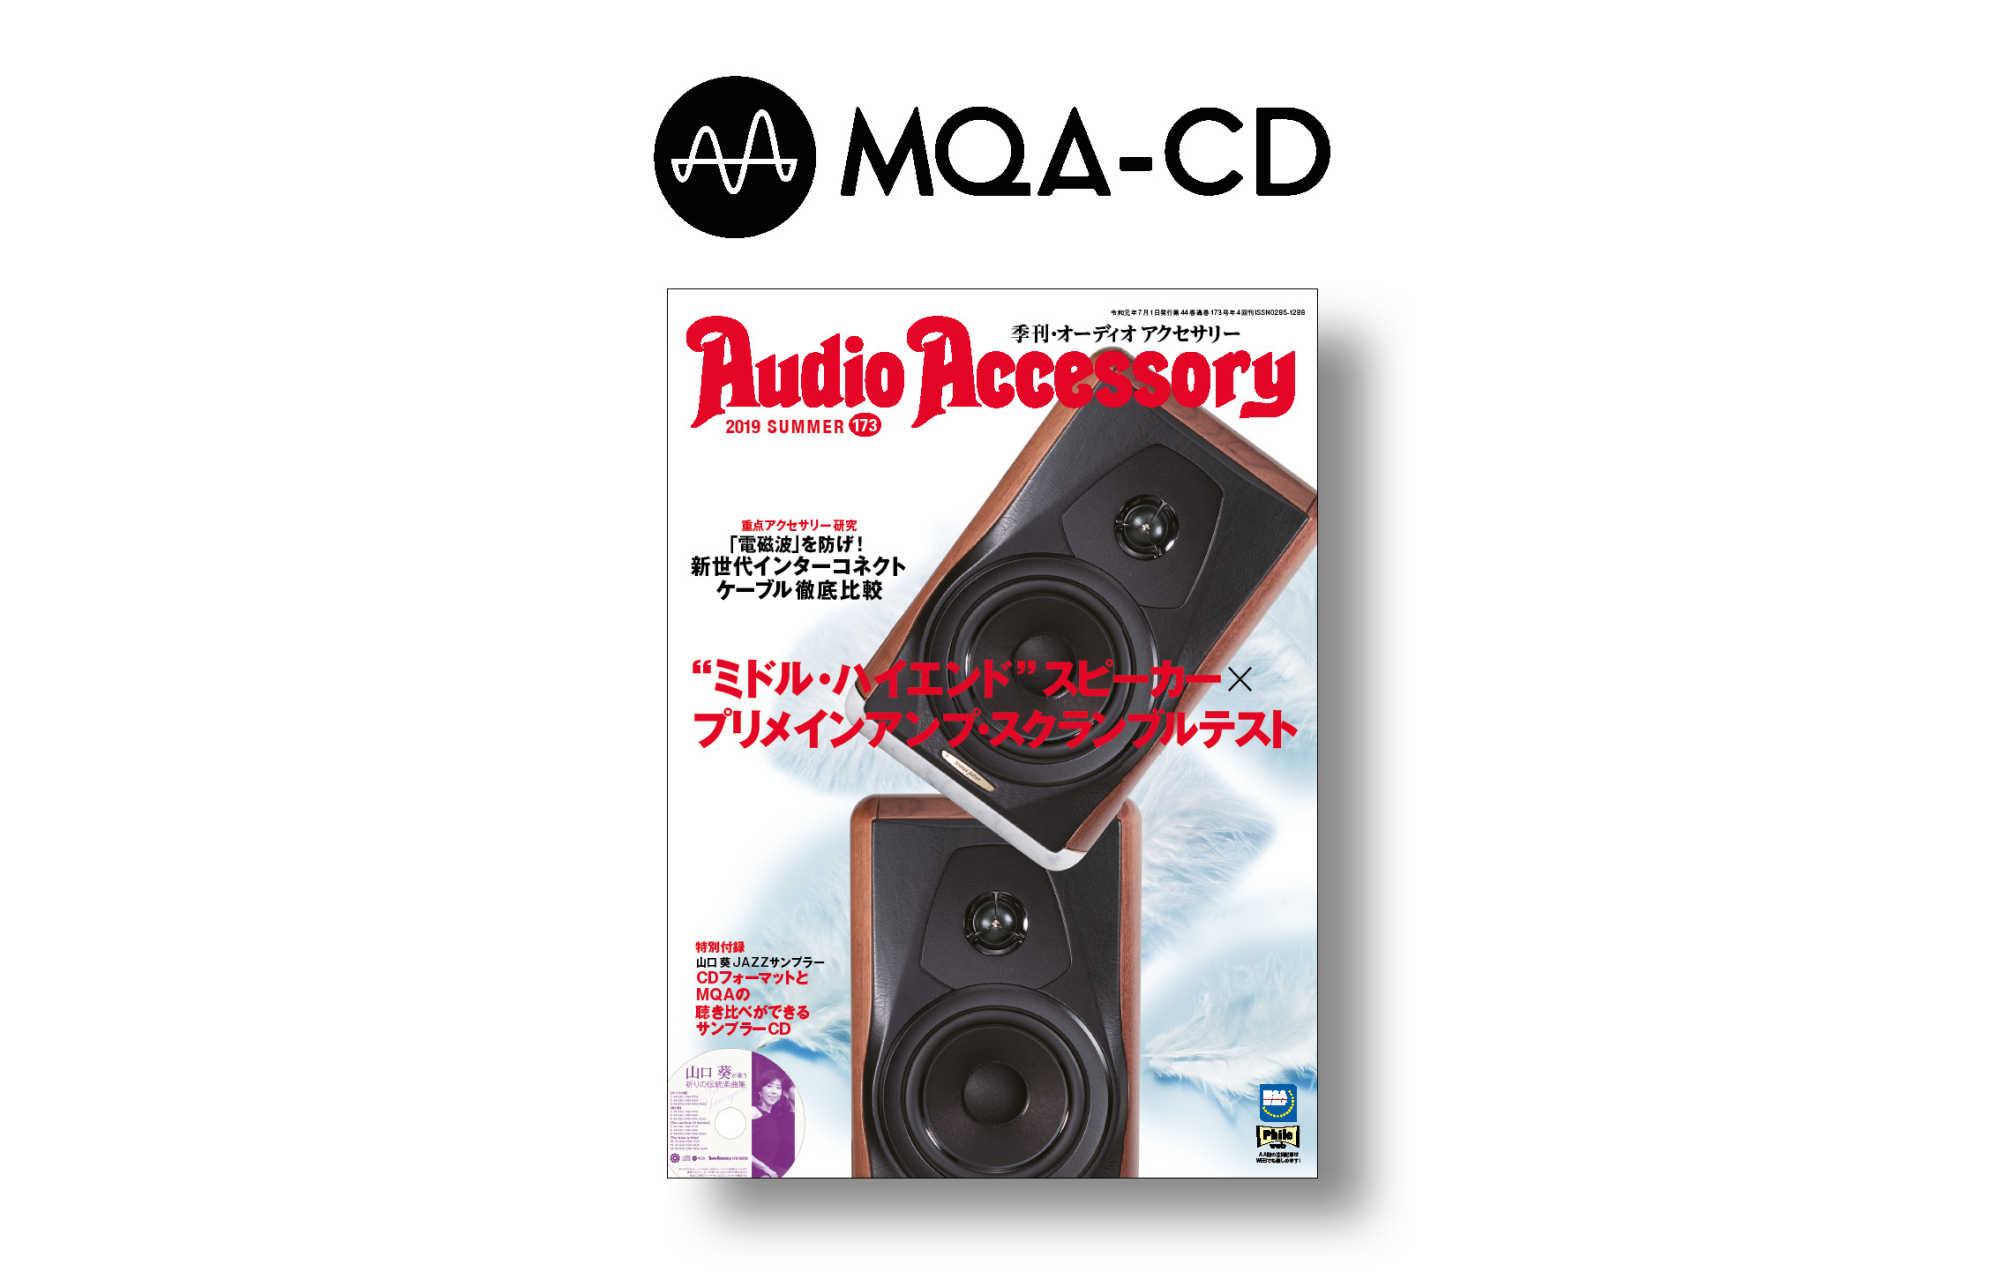 AudioAccessory 173 MQA-CD